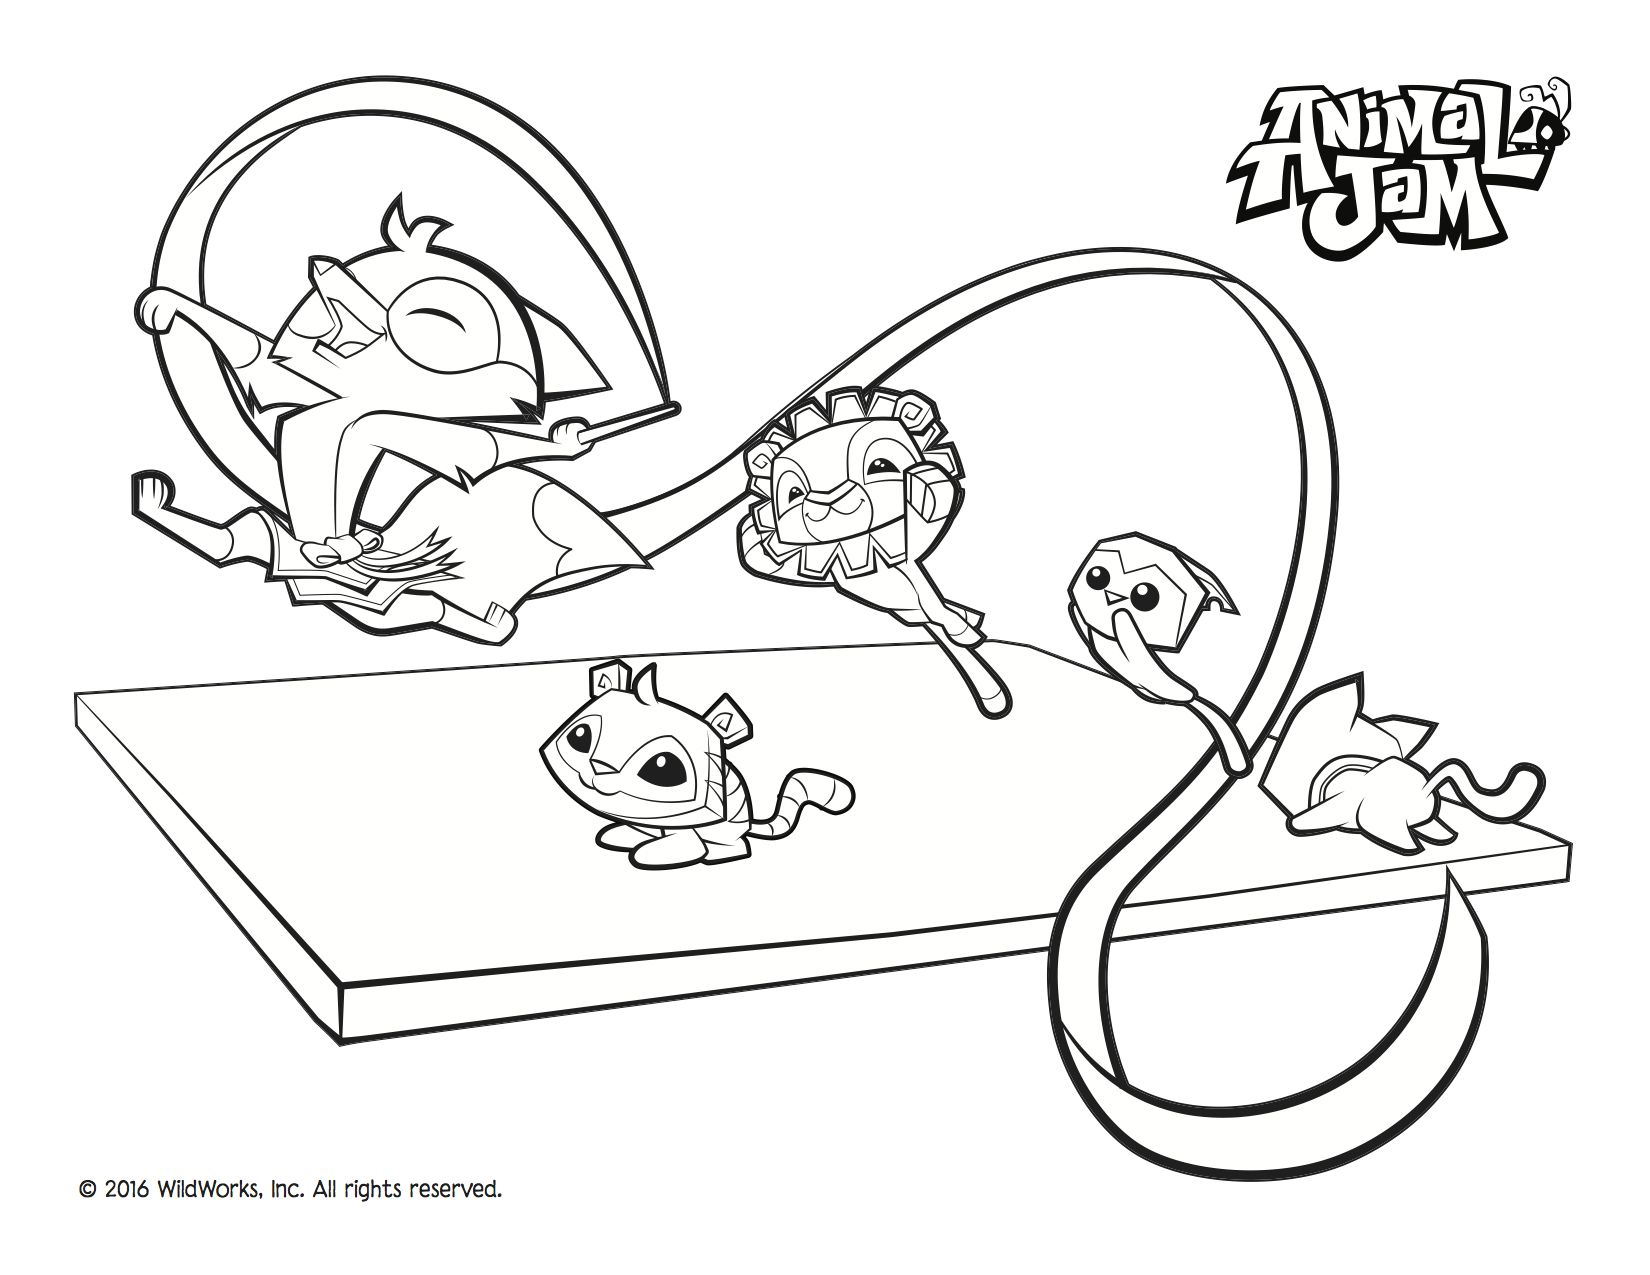 Coloring pages animal jam - More Summer Games Fun With This Awesome Coloring Sheet From Animal Jam Download And Celebrate